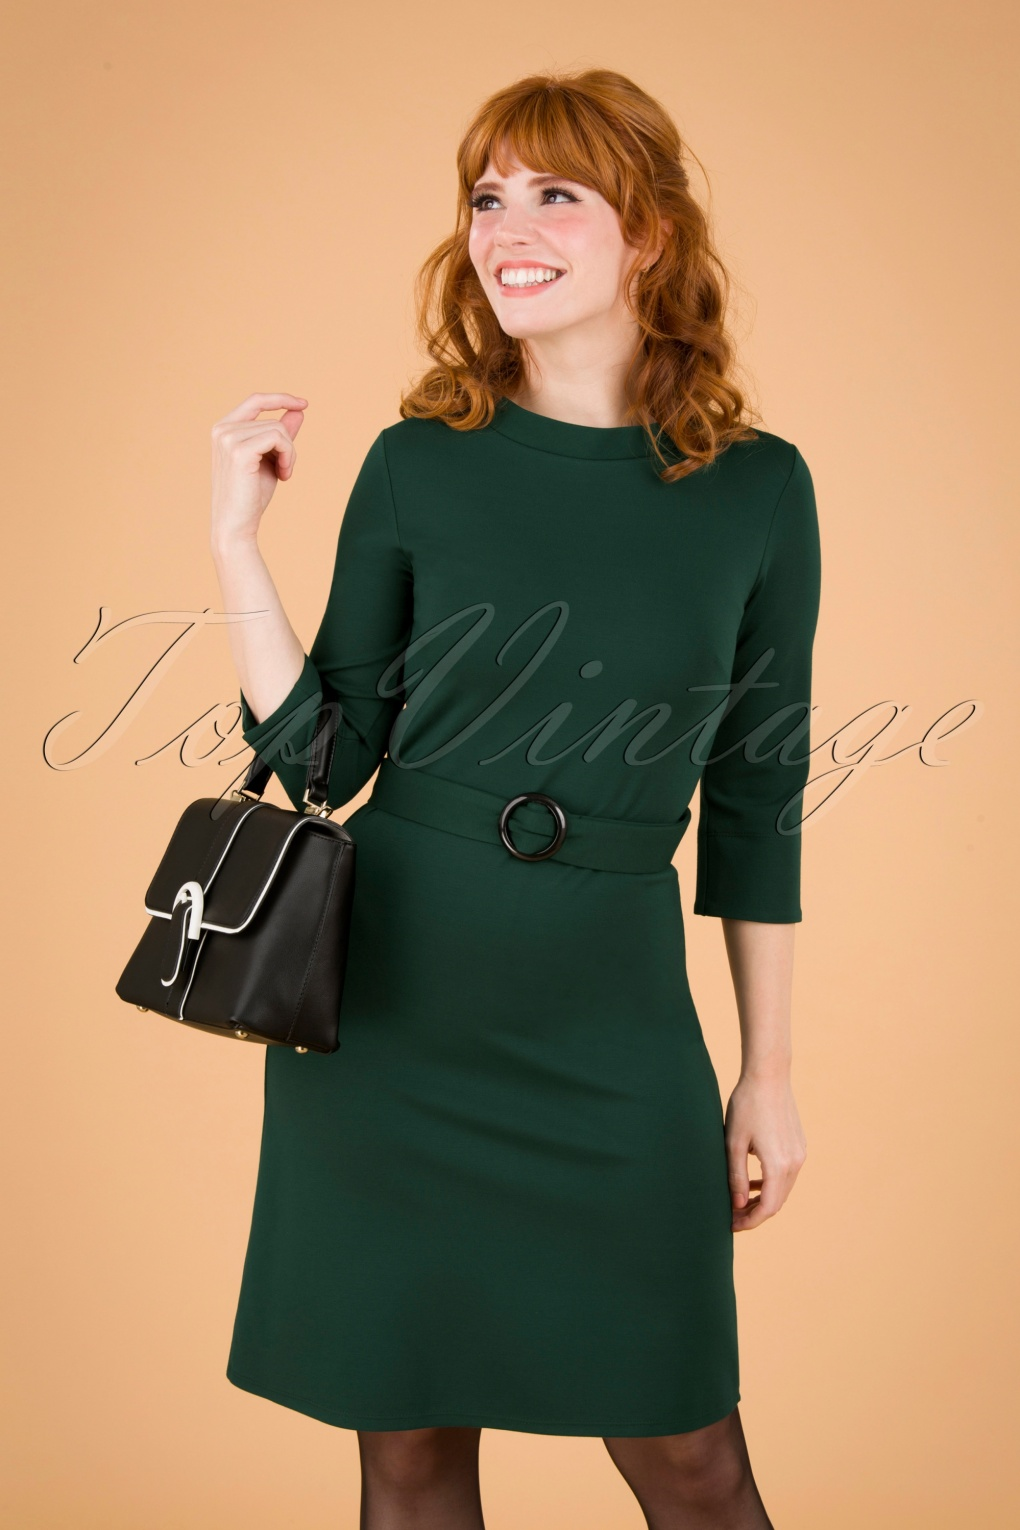 Vintage Style Dresses | Vintage Inspired Dresses 60s Agneta A-line Dress in Green £96.84 AT vintagedancer.com